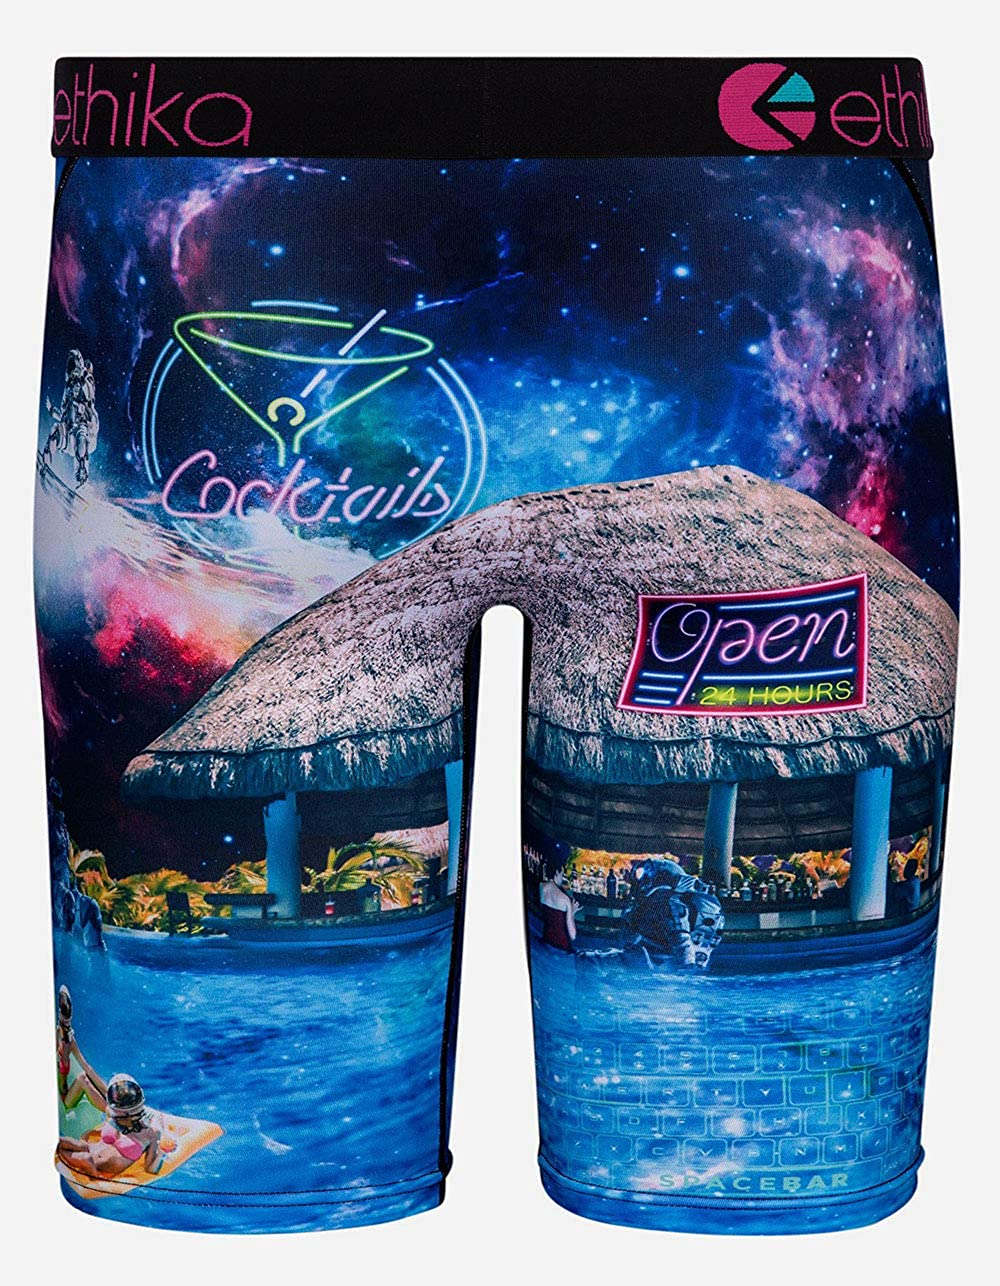 Ethika Space Bar Staple Boys Boxer Briefs